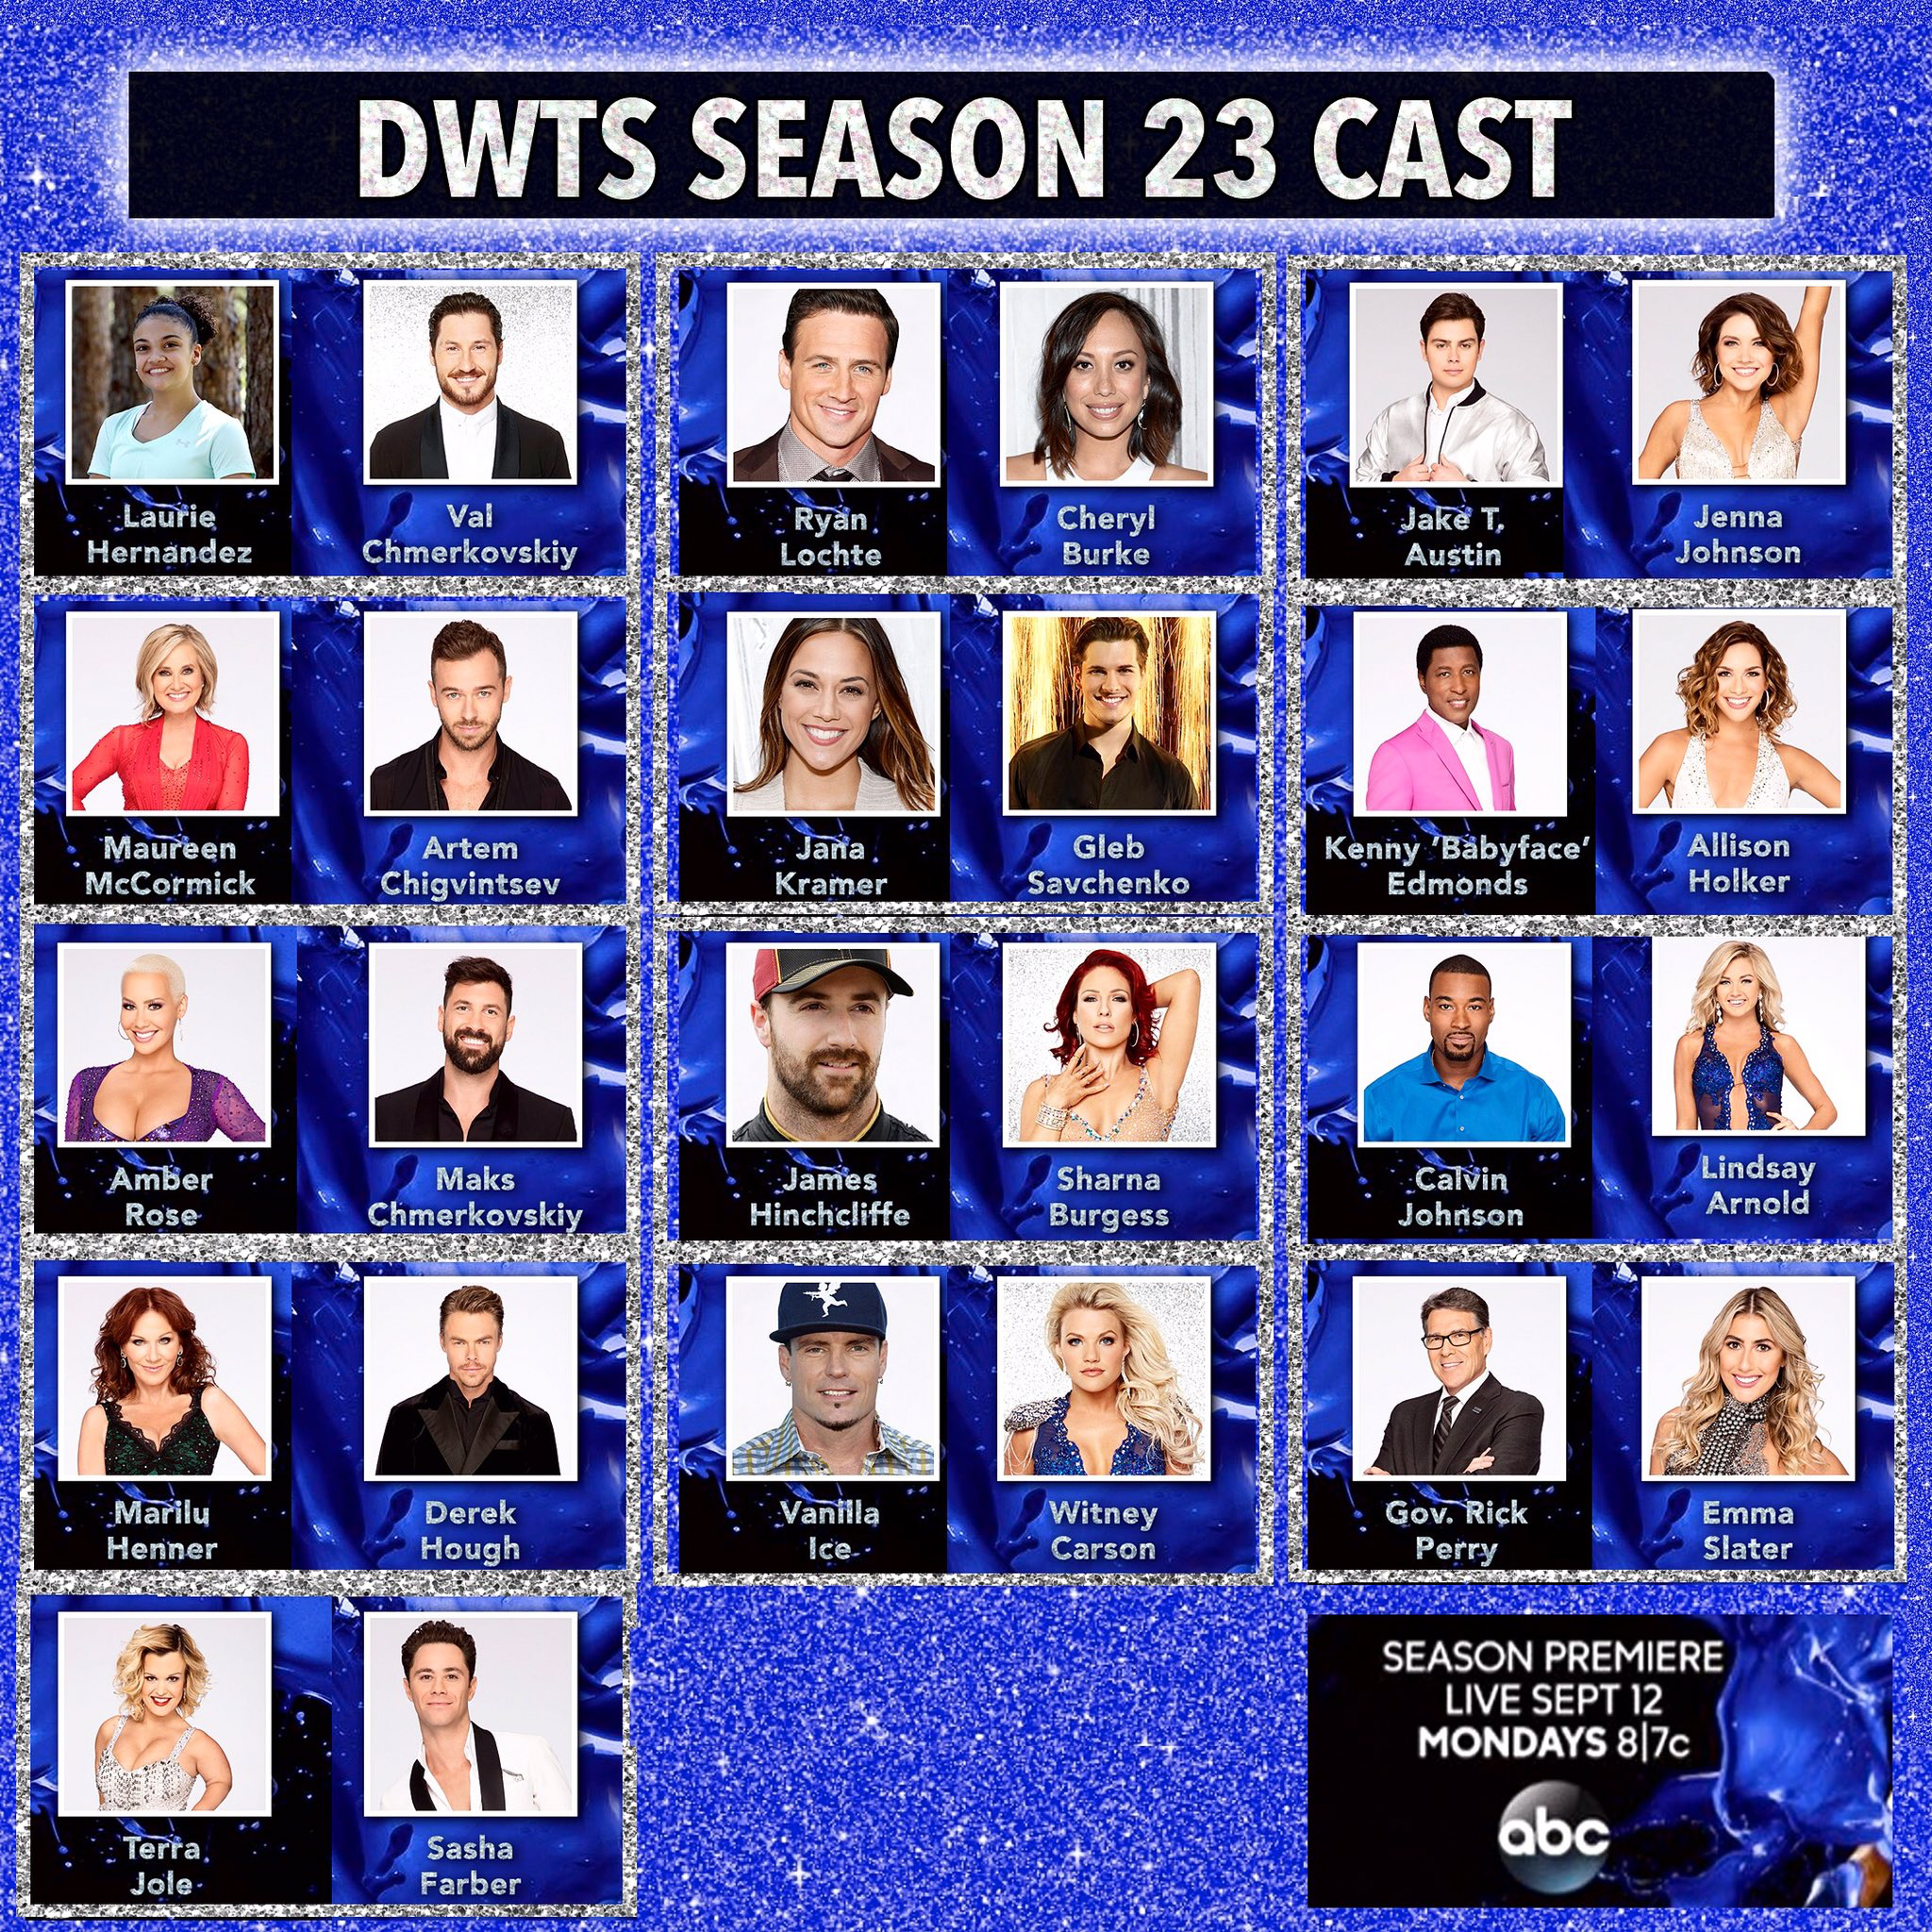 Pin By Barry Wood On Dwts 23 General Dancing With The Stars Dwts Star Tv Series